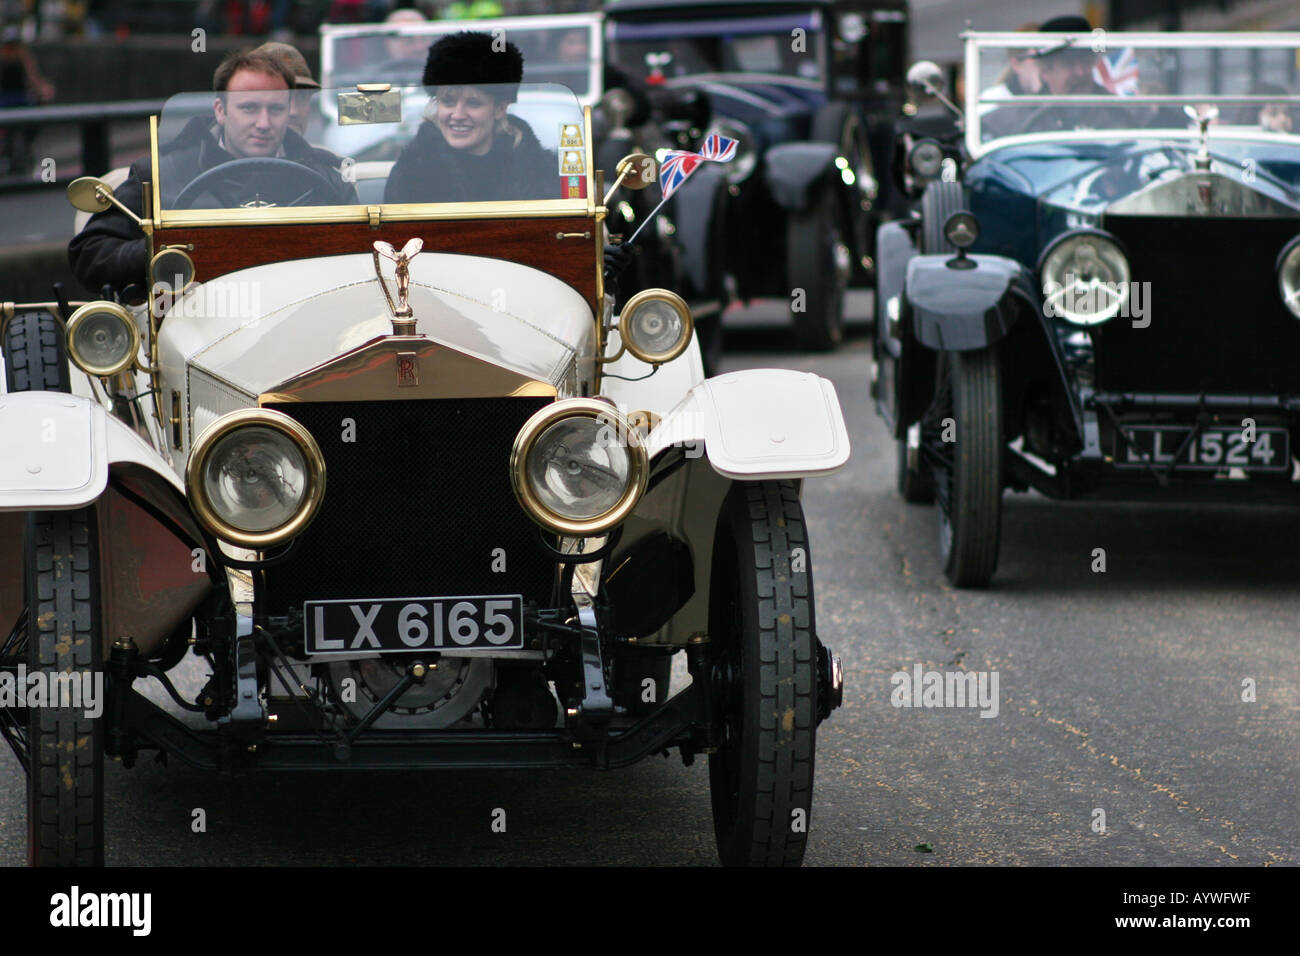 Rolls Royce Motor Cars Ltd at the Lord Mayors Parade in London UK - Stock Image